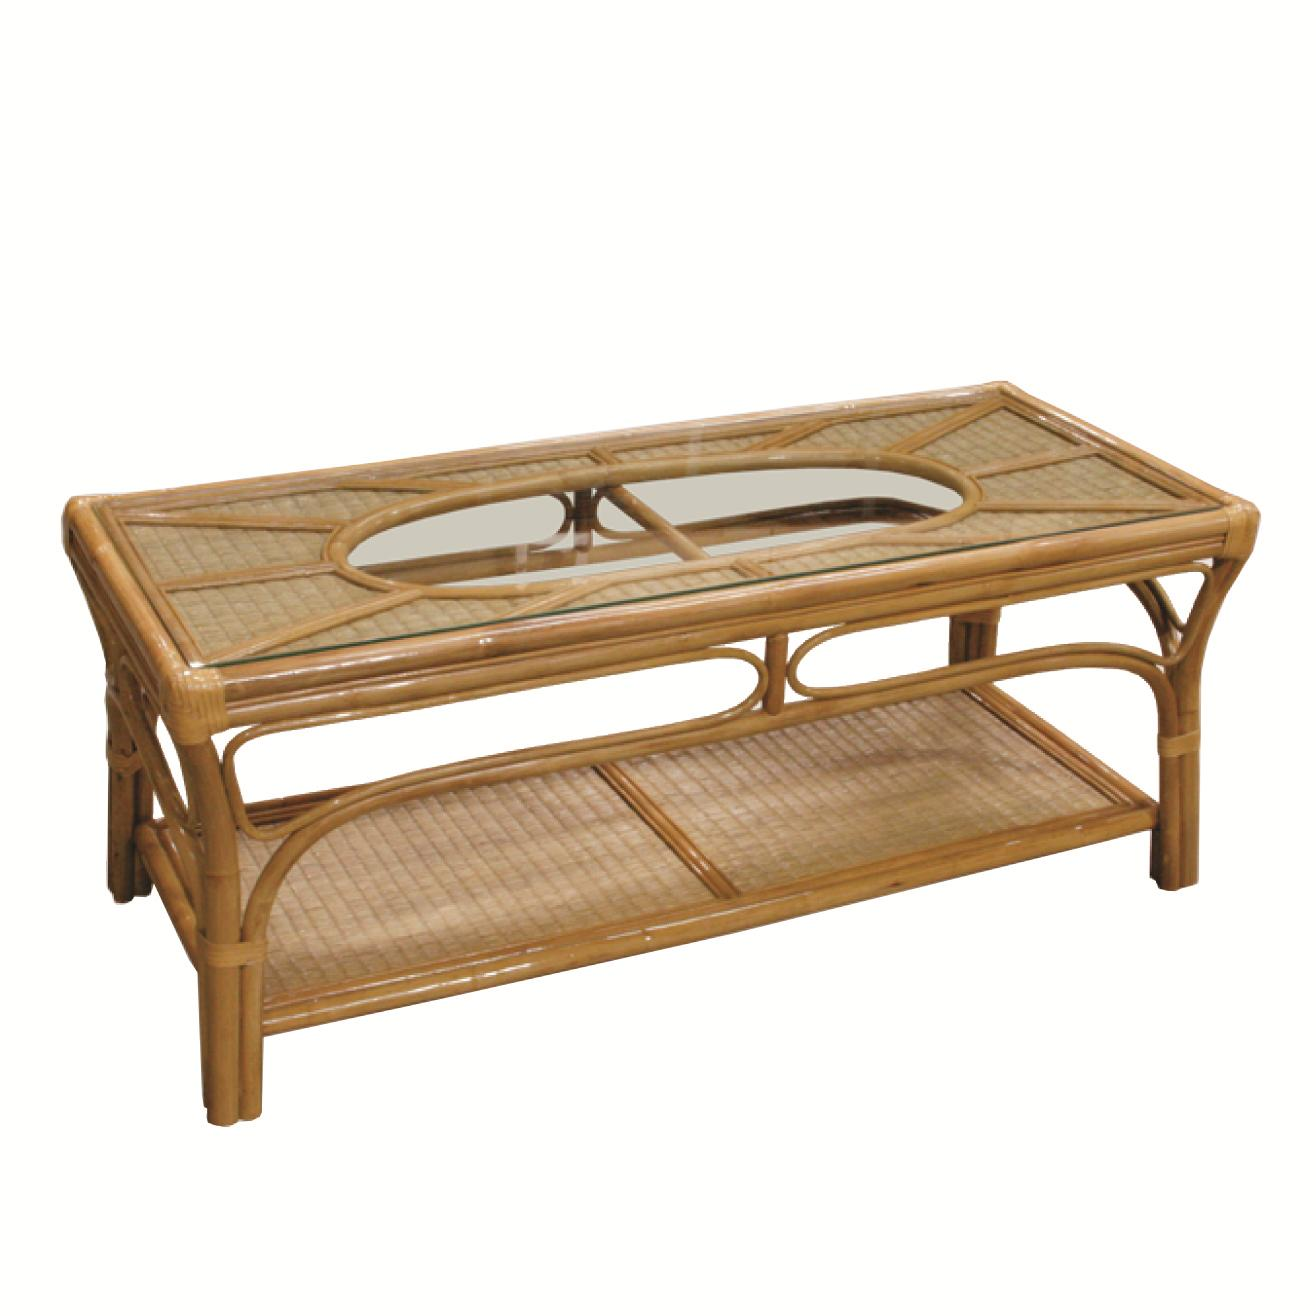 381 Collection Wicker Rattan Cocktail Table by Capris Furniture at Esprit Decor Home Furnishings